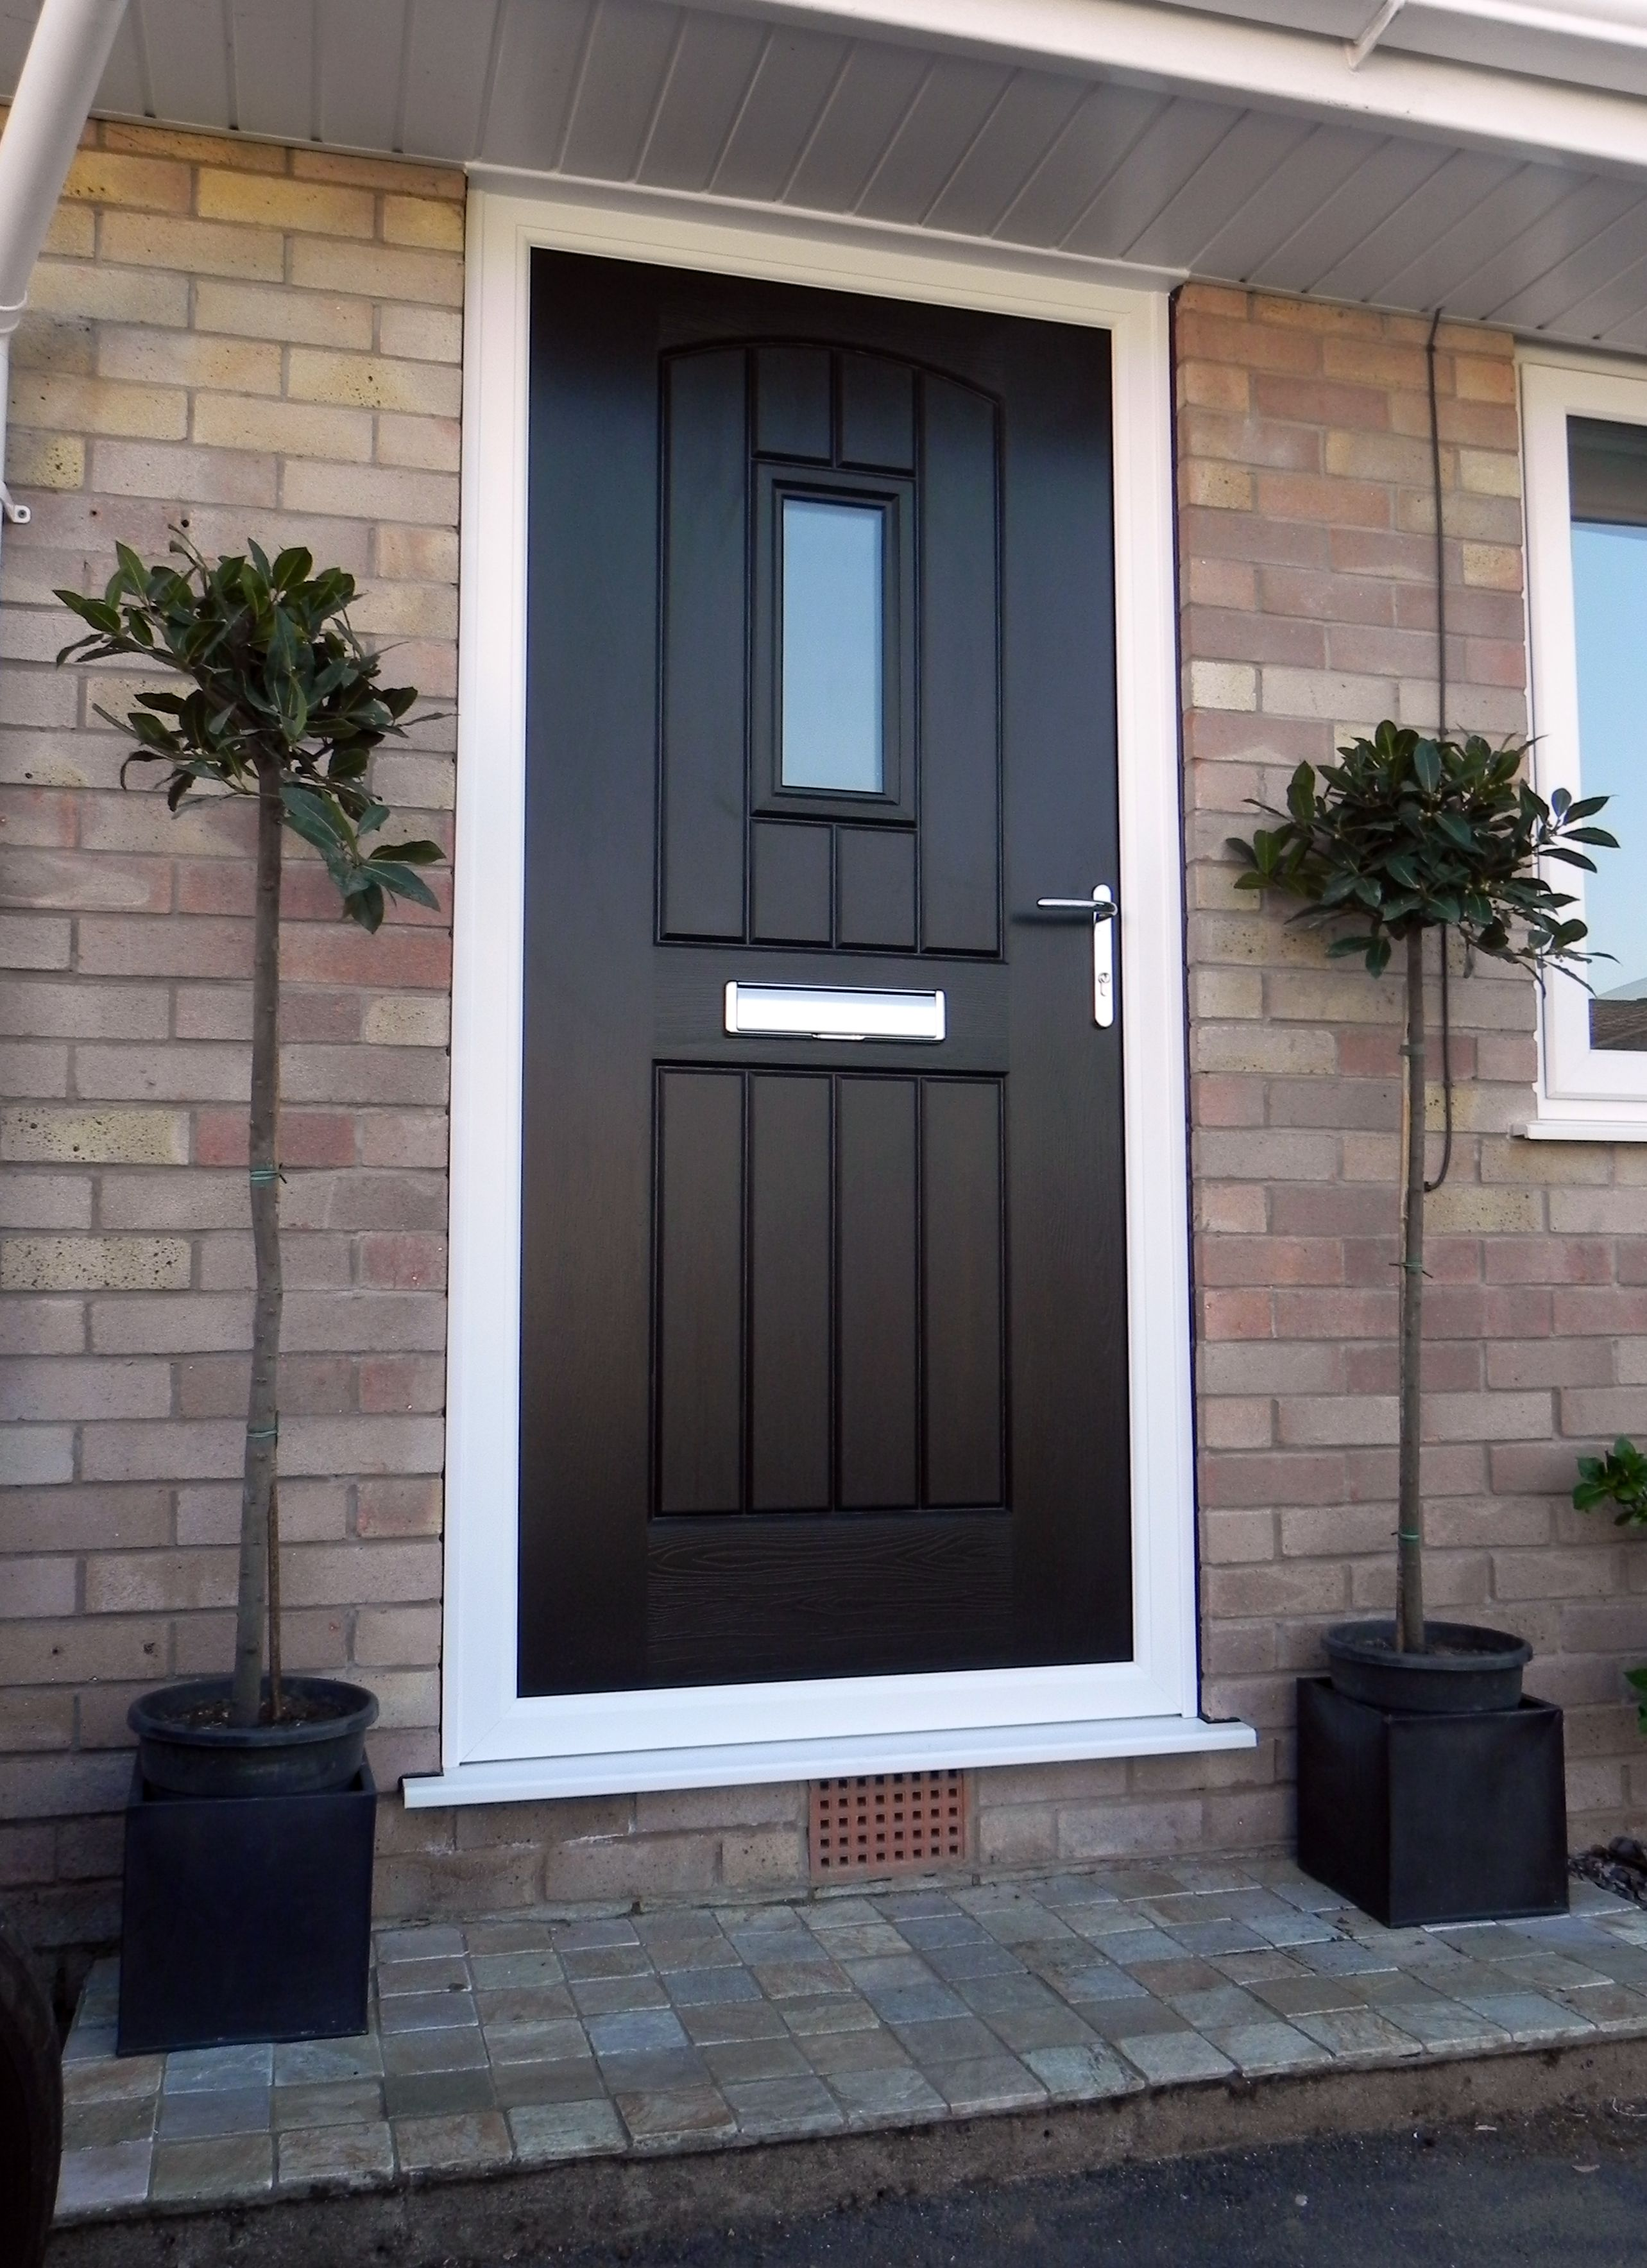 Rockdoor Composite Doors in Stockport & A Black English Cottage design | Black Rockdoors | Pinterest ...